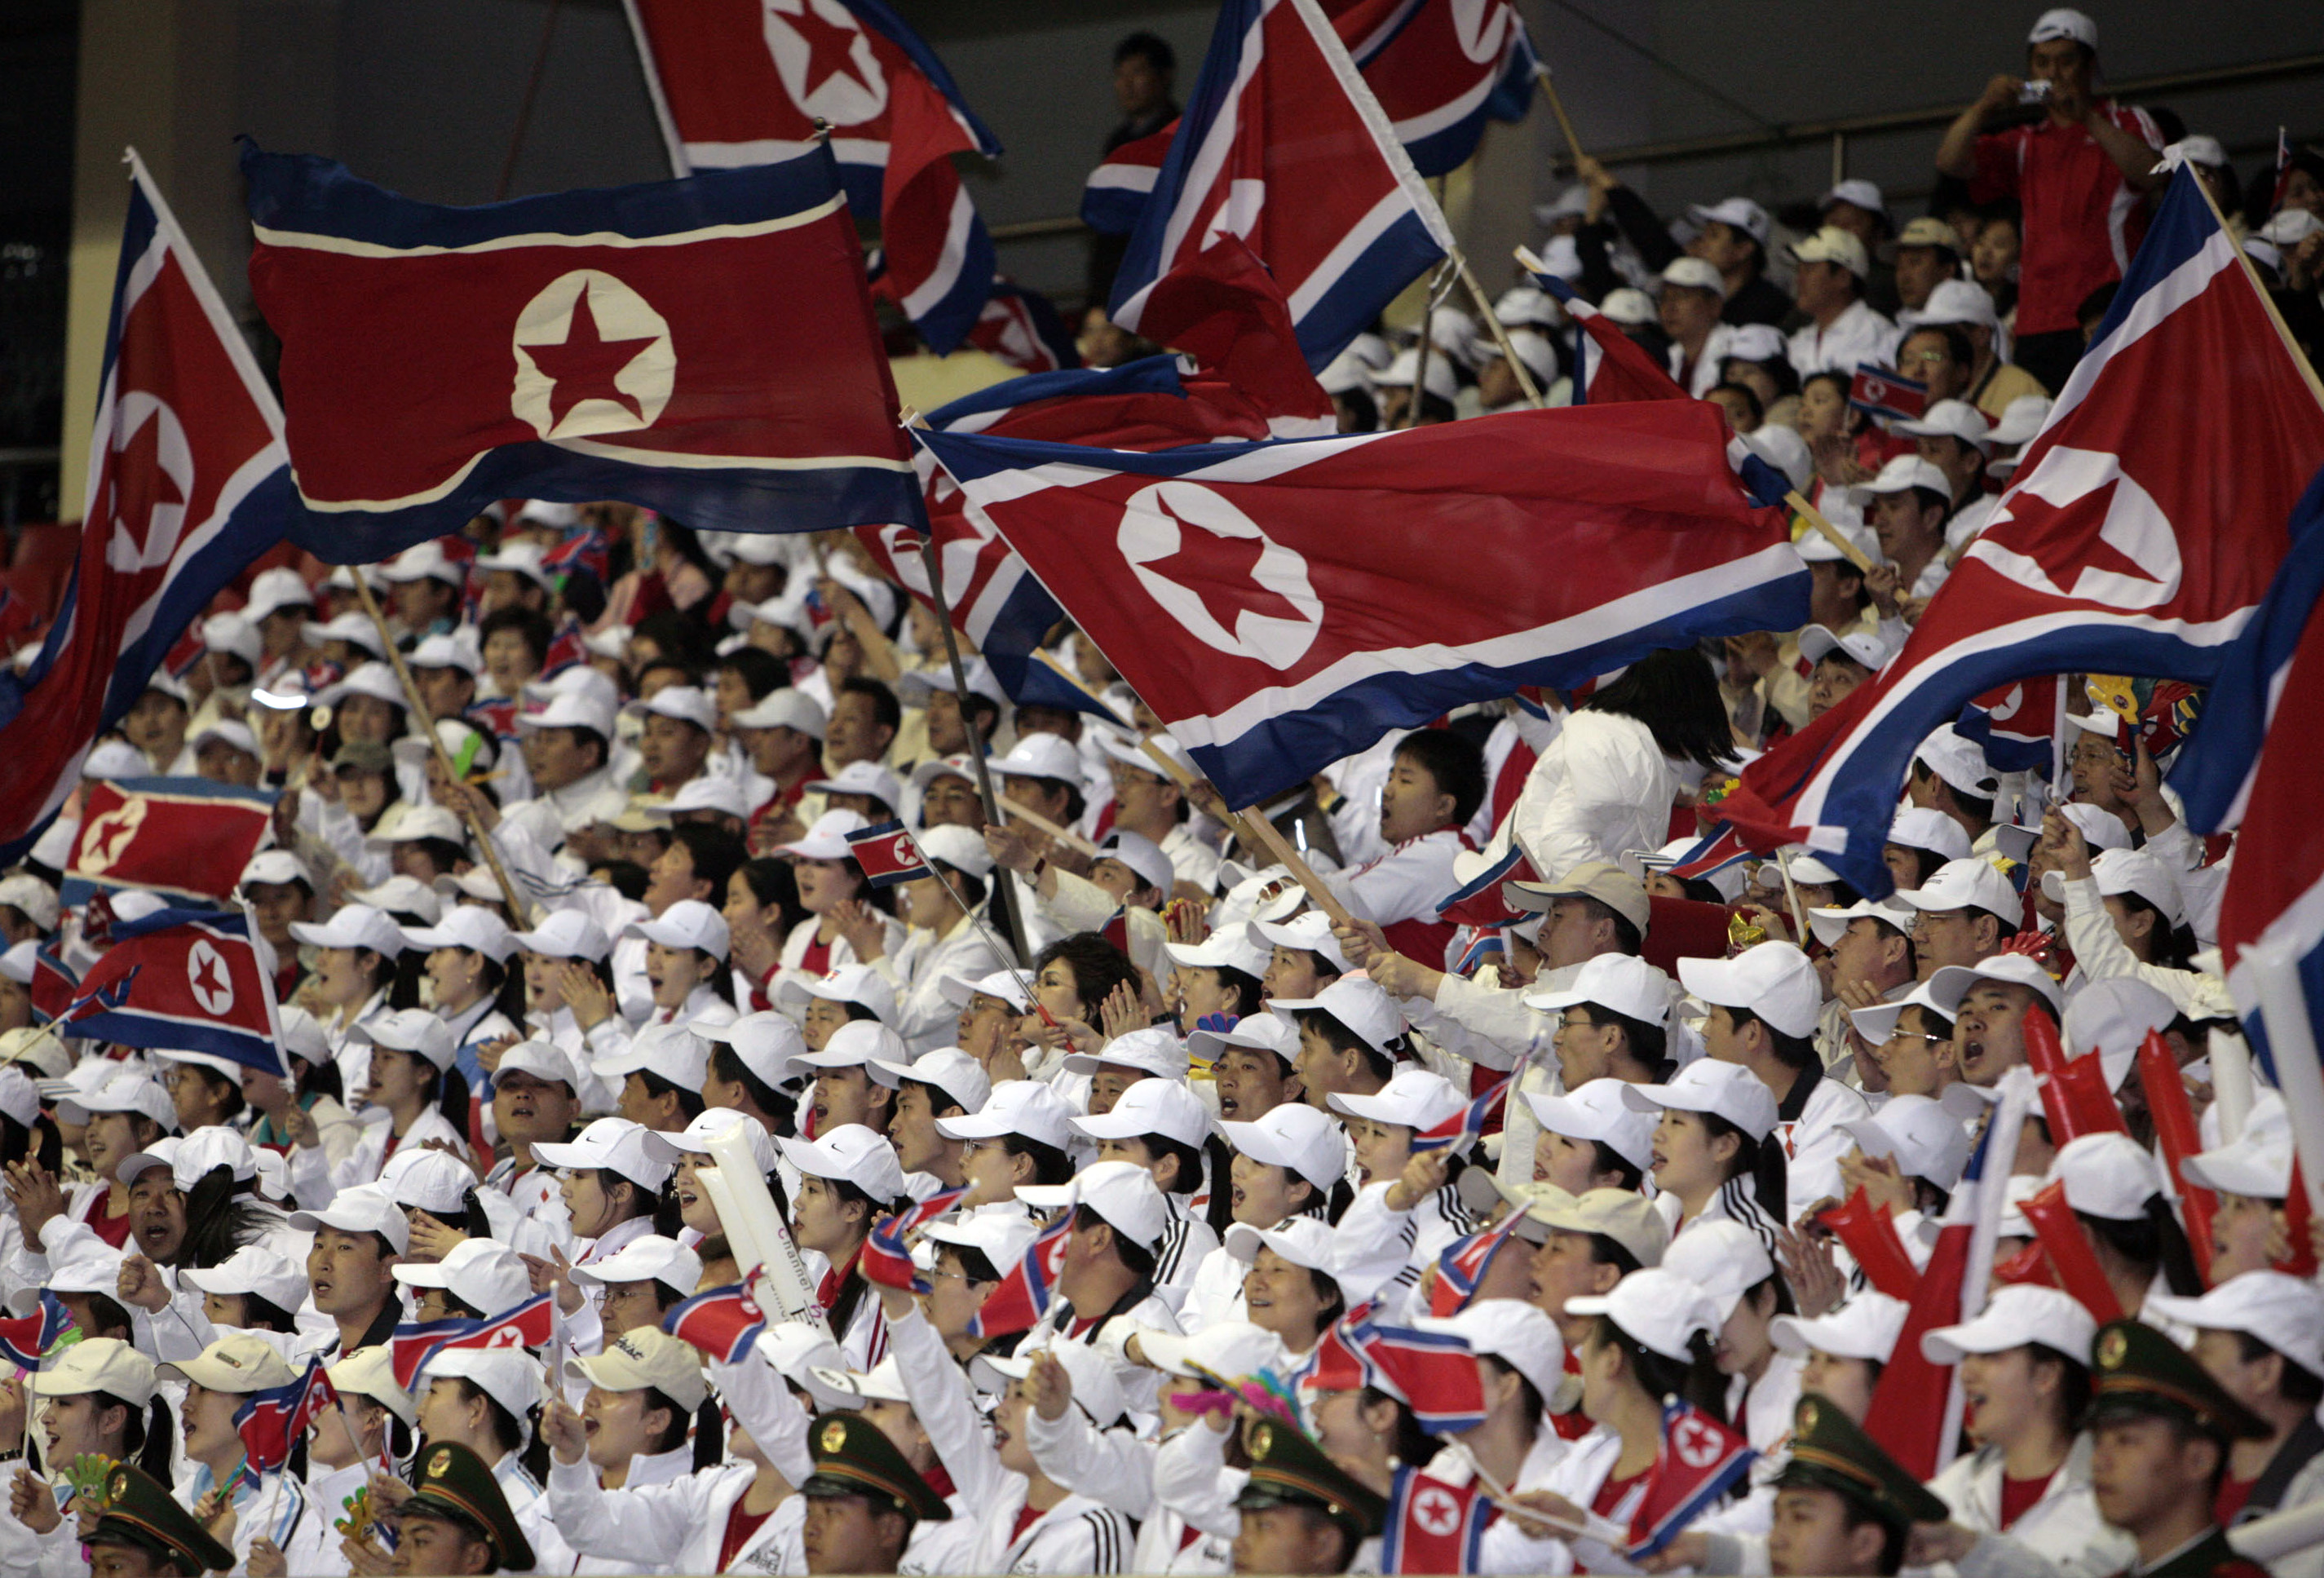 North Korean soccer team fans fly their country's flag at a game against South Korea in Shanghai, China, on March 26, 2008.